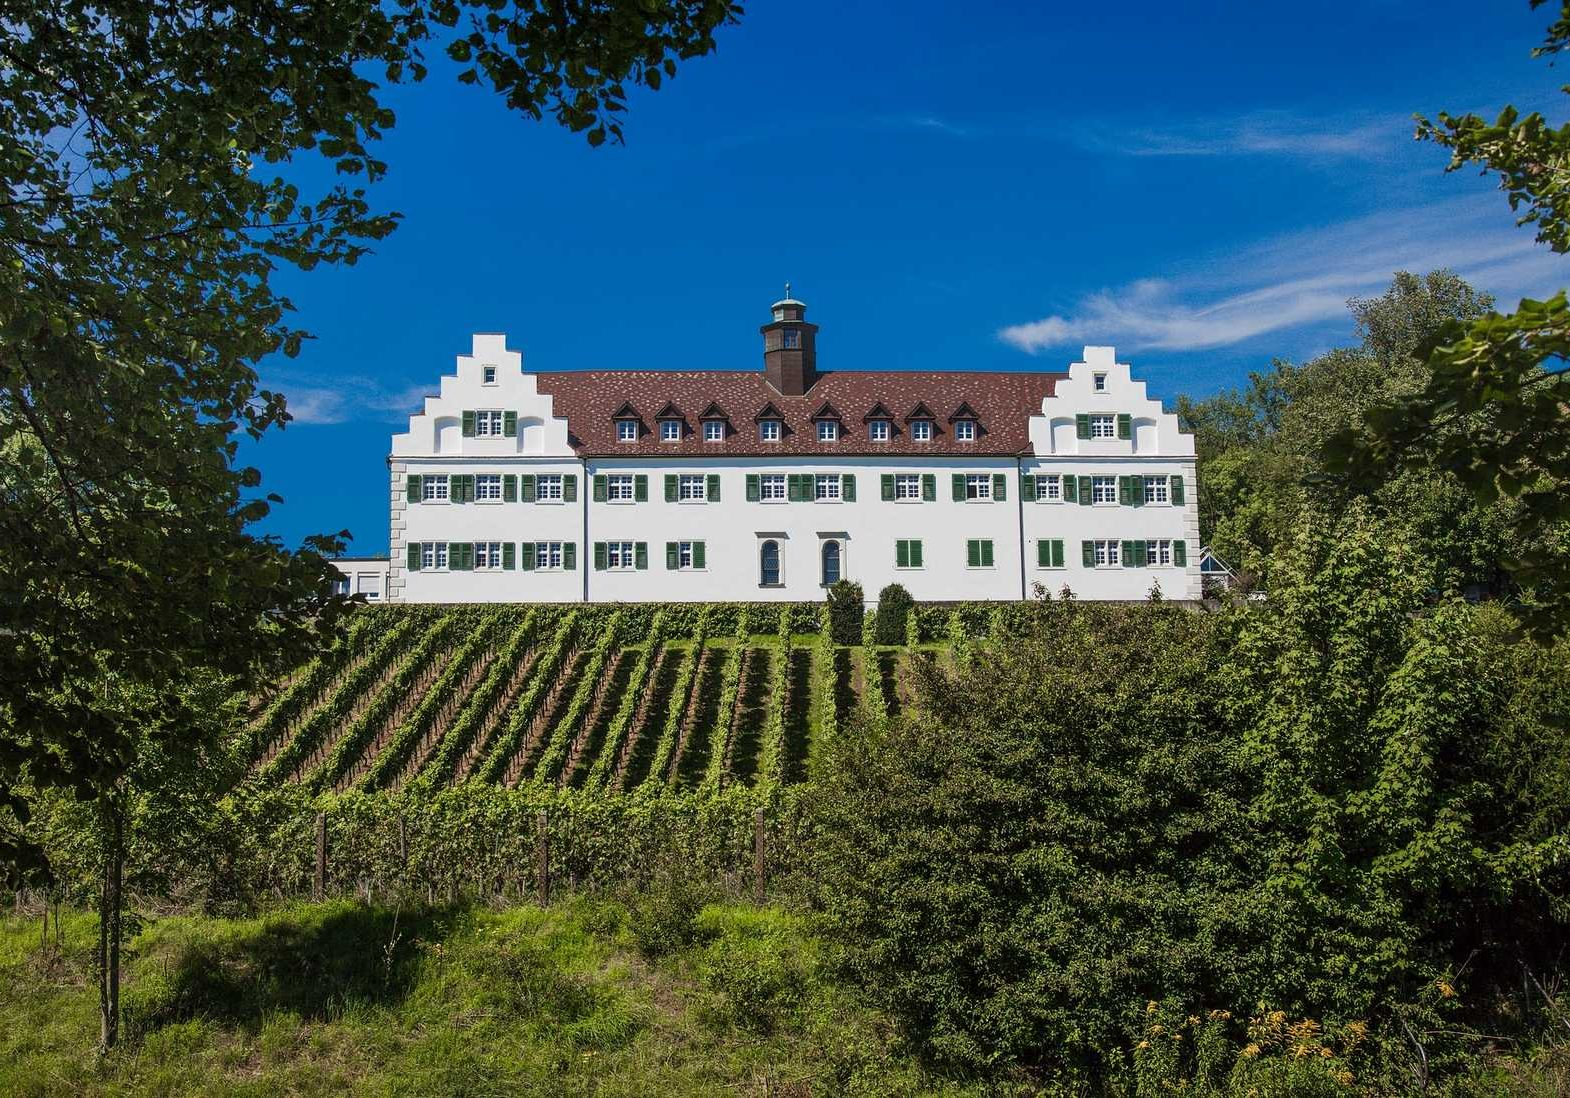 Derks24-castle-hersberg-vineyard-event-2661971-1600x